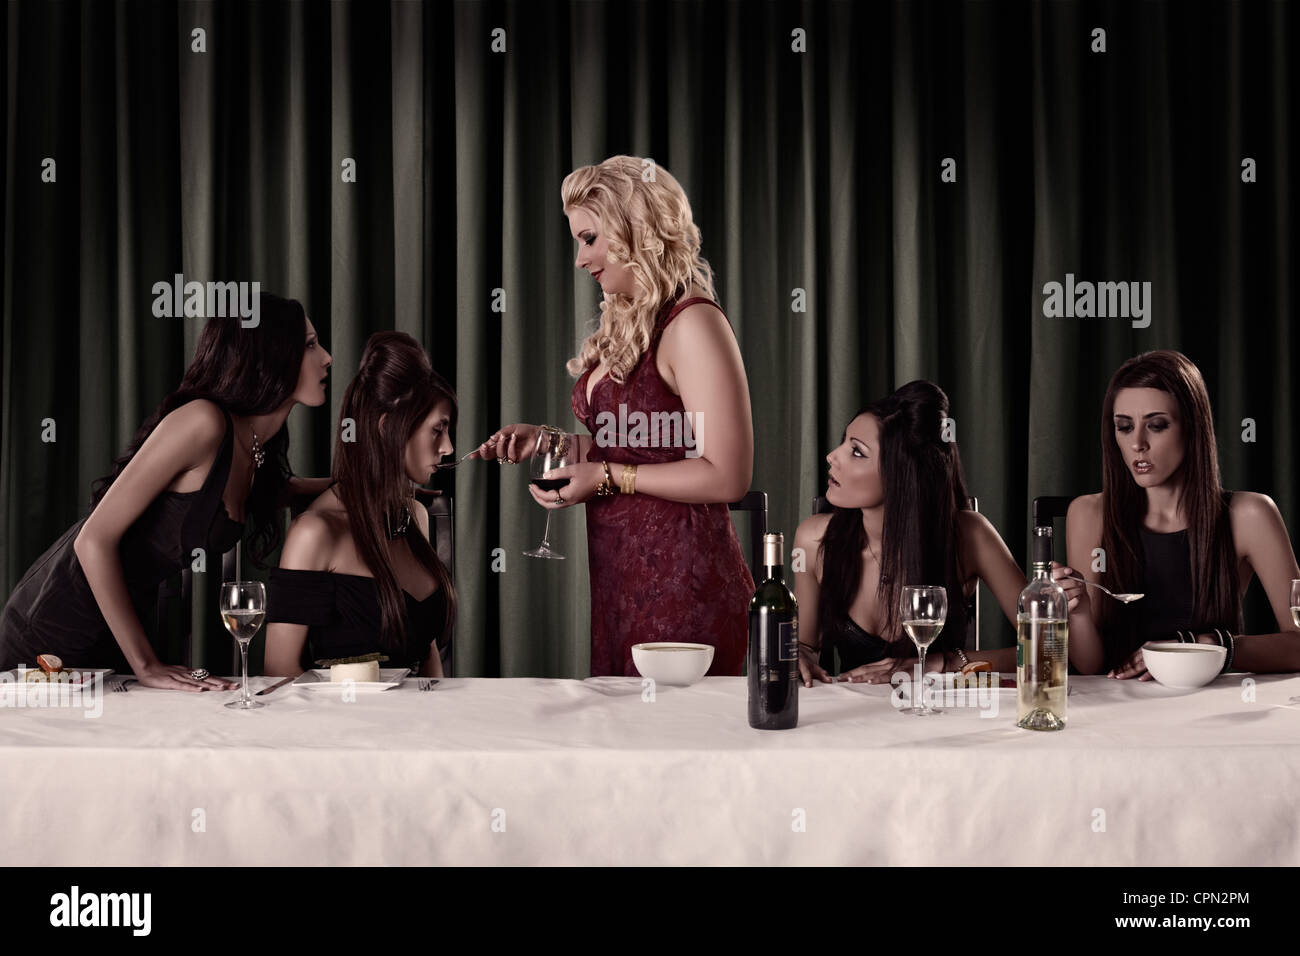 The First Supper (set of 4) ... 2 models portraying two diners each - Stock Image